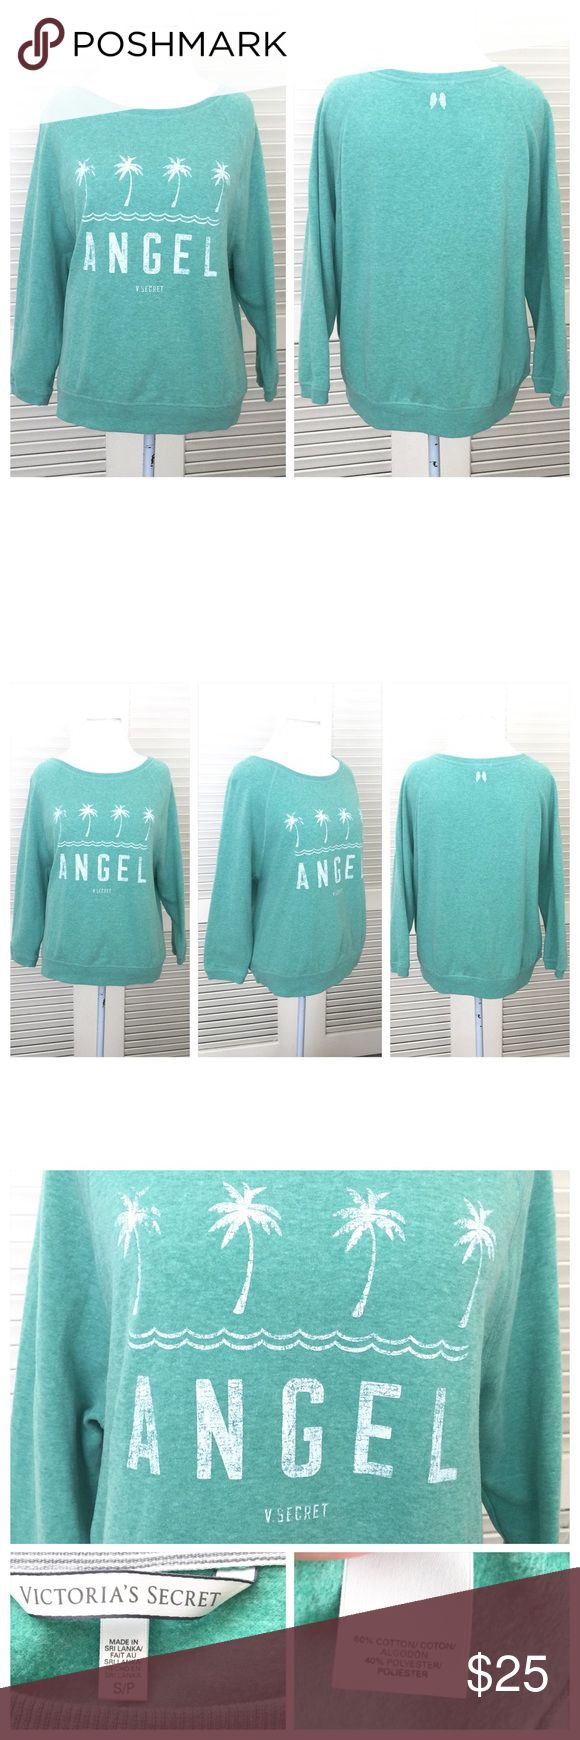 """Victoria's Secret Printed Slouchy Sweatshirt Victoria's Secret ANGEL Palm Tree Print Slouchy Sweatshirt. Mint green in color with contrasting white print. SUPER SOFT. Size small. Can be worn off Shoulder. Measurements are armpit to armpit 24"""", length 25"""" and sleeve measured from back mid seam of neck is 28"""". Like new. All my items are from a smoke free environment. Victoria's Secret Tops Sweatshirts & Hoodies"""